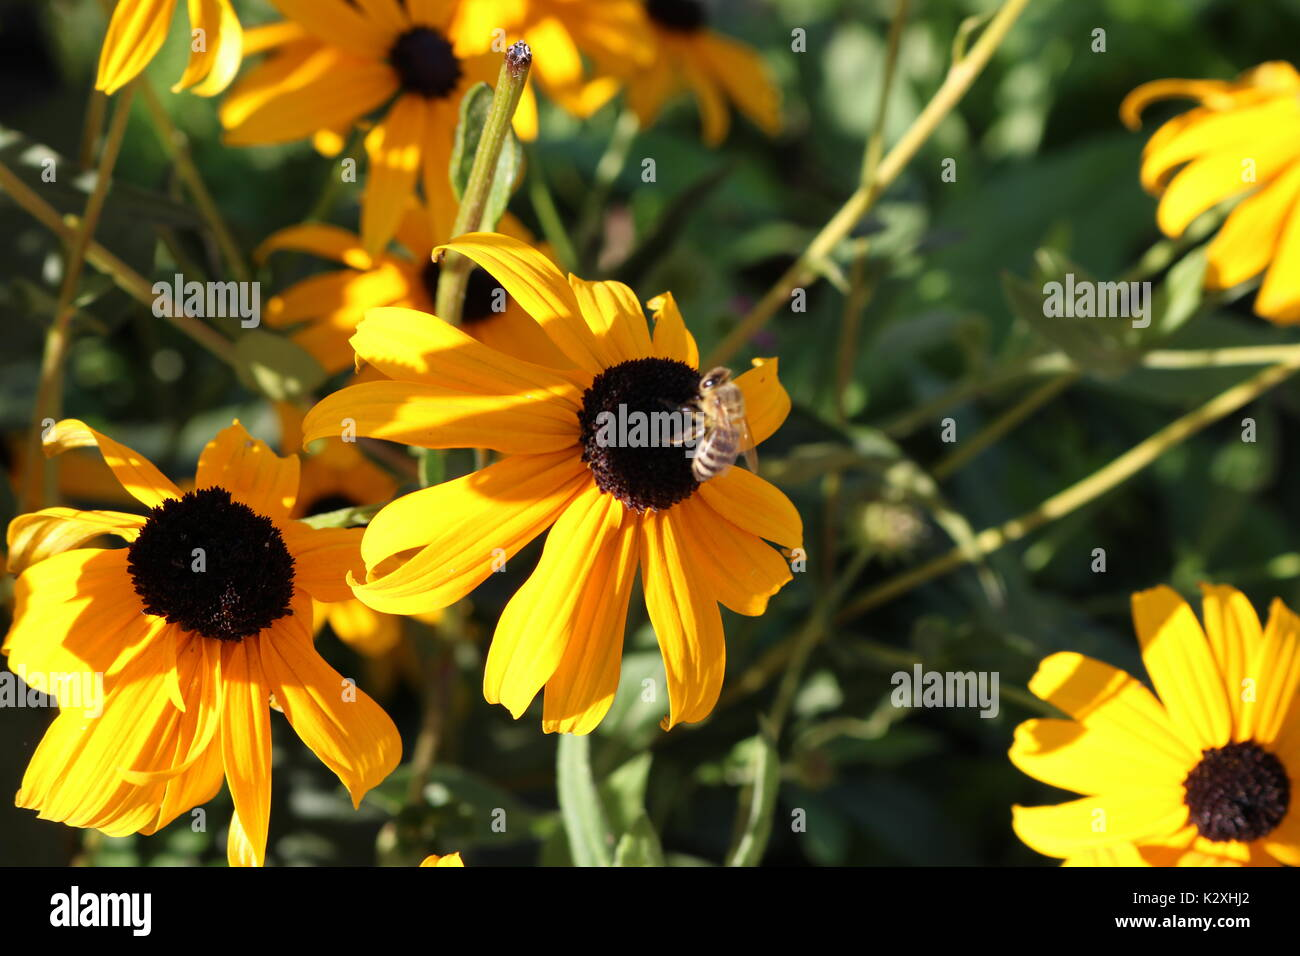 Rudbeckia nitida, herbstonne - Pollinator Bee on a sunny day at village. - Stock Image